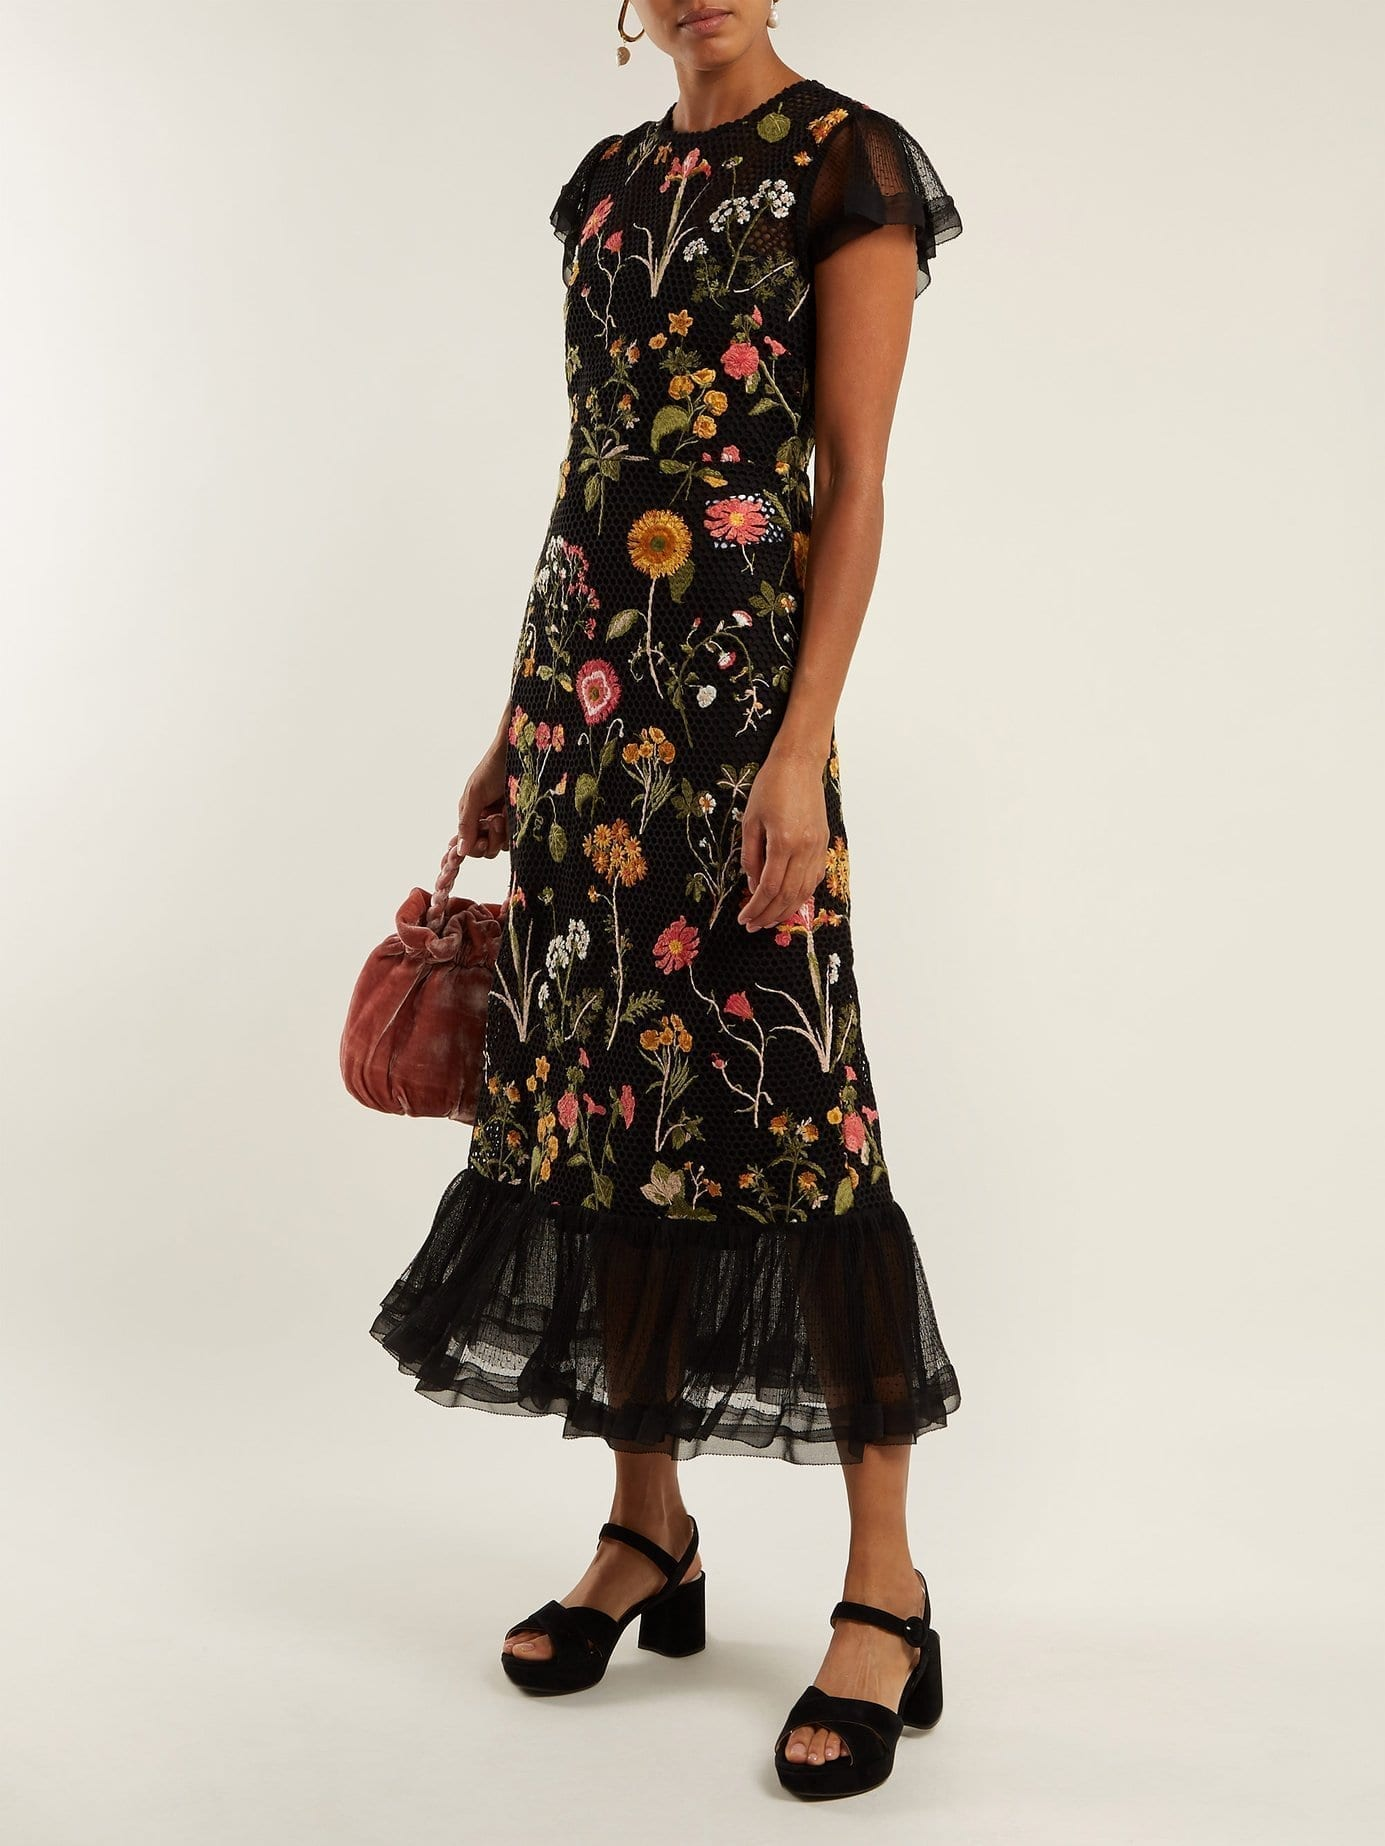 REDVALENTINO Floral Embroidered Cotton Mesh Black Dress